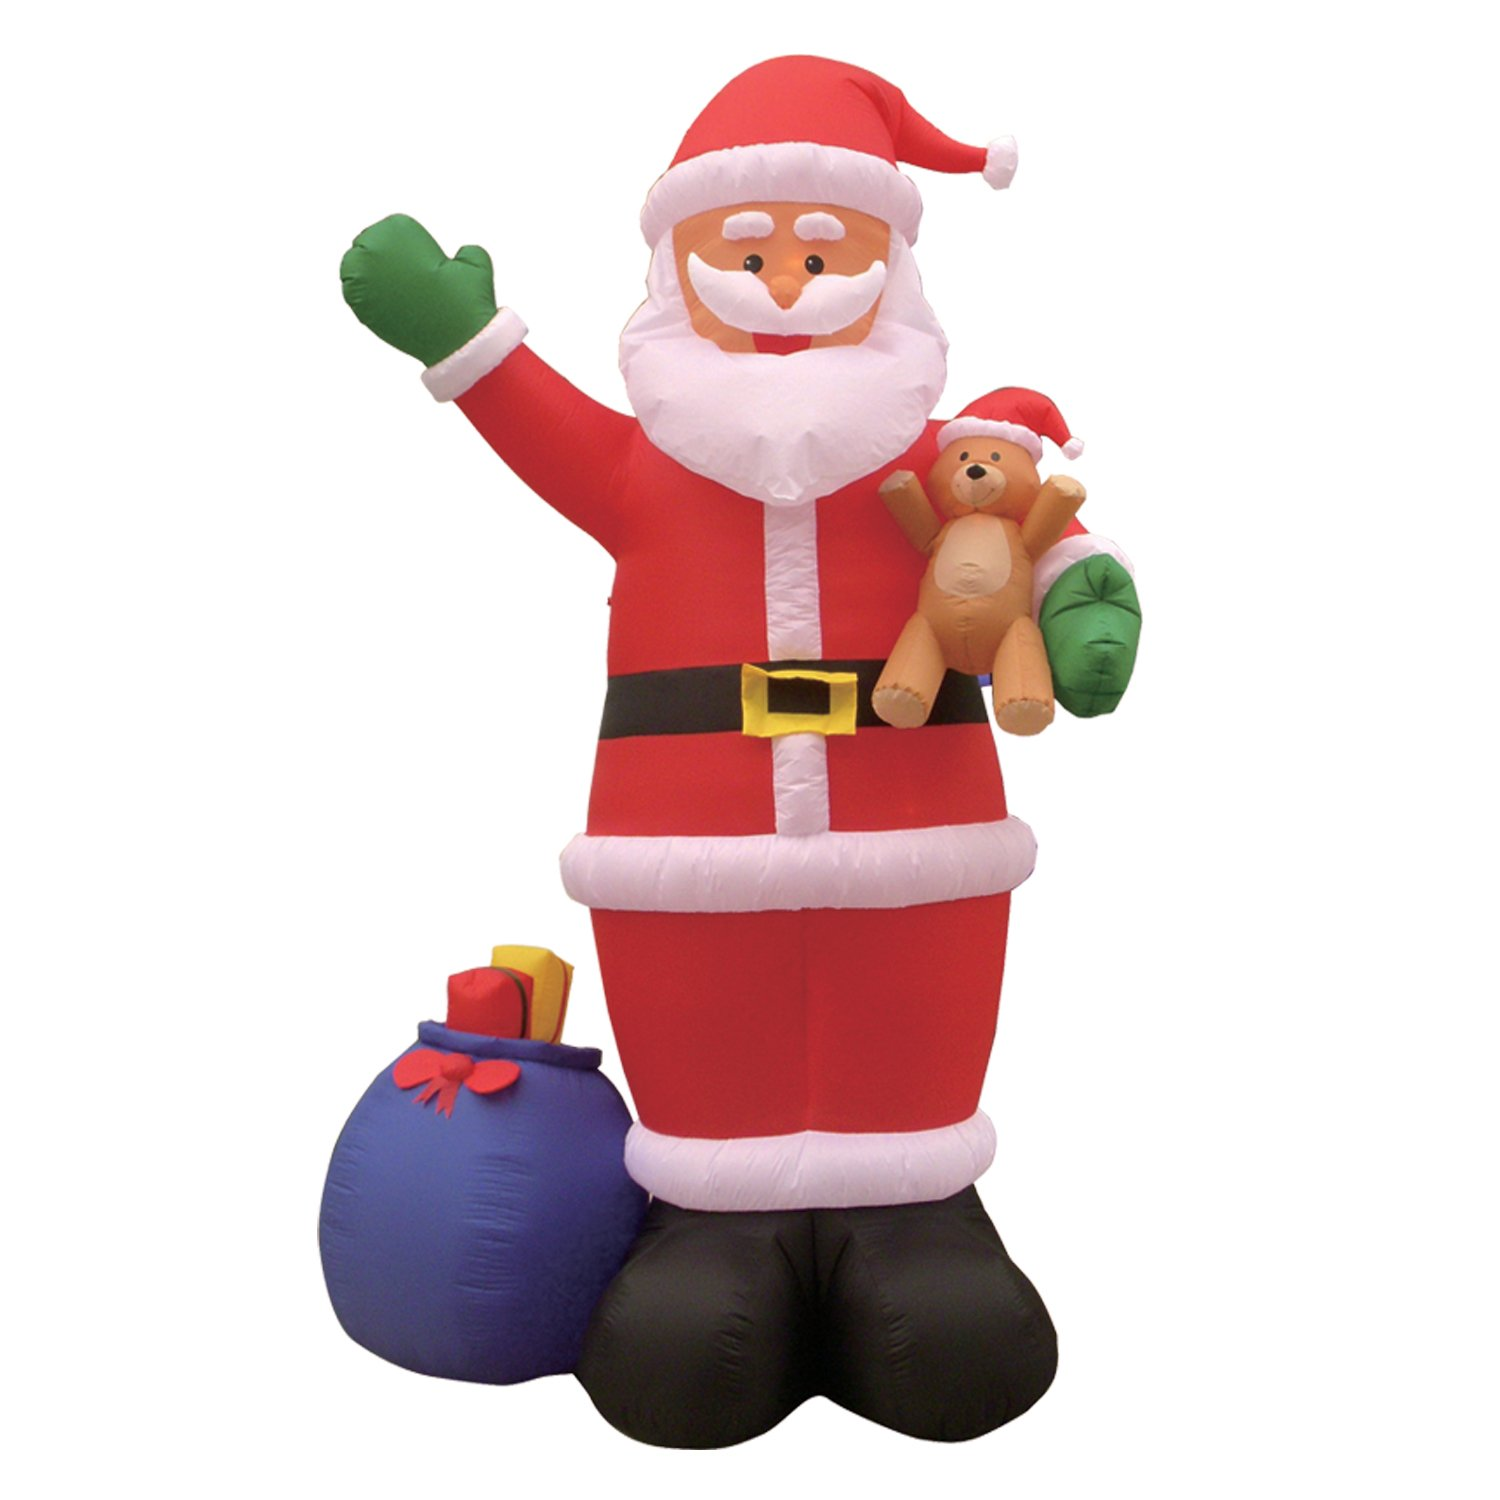 christmas decorations holding figure decoration candle claus decor santa animated pre lit